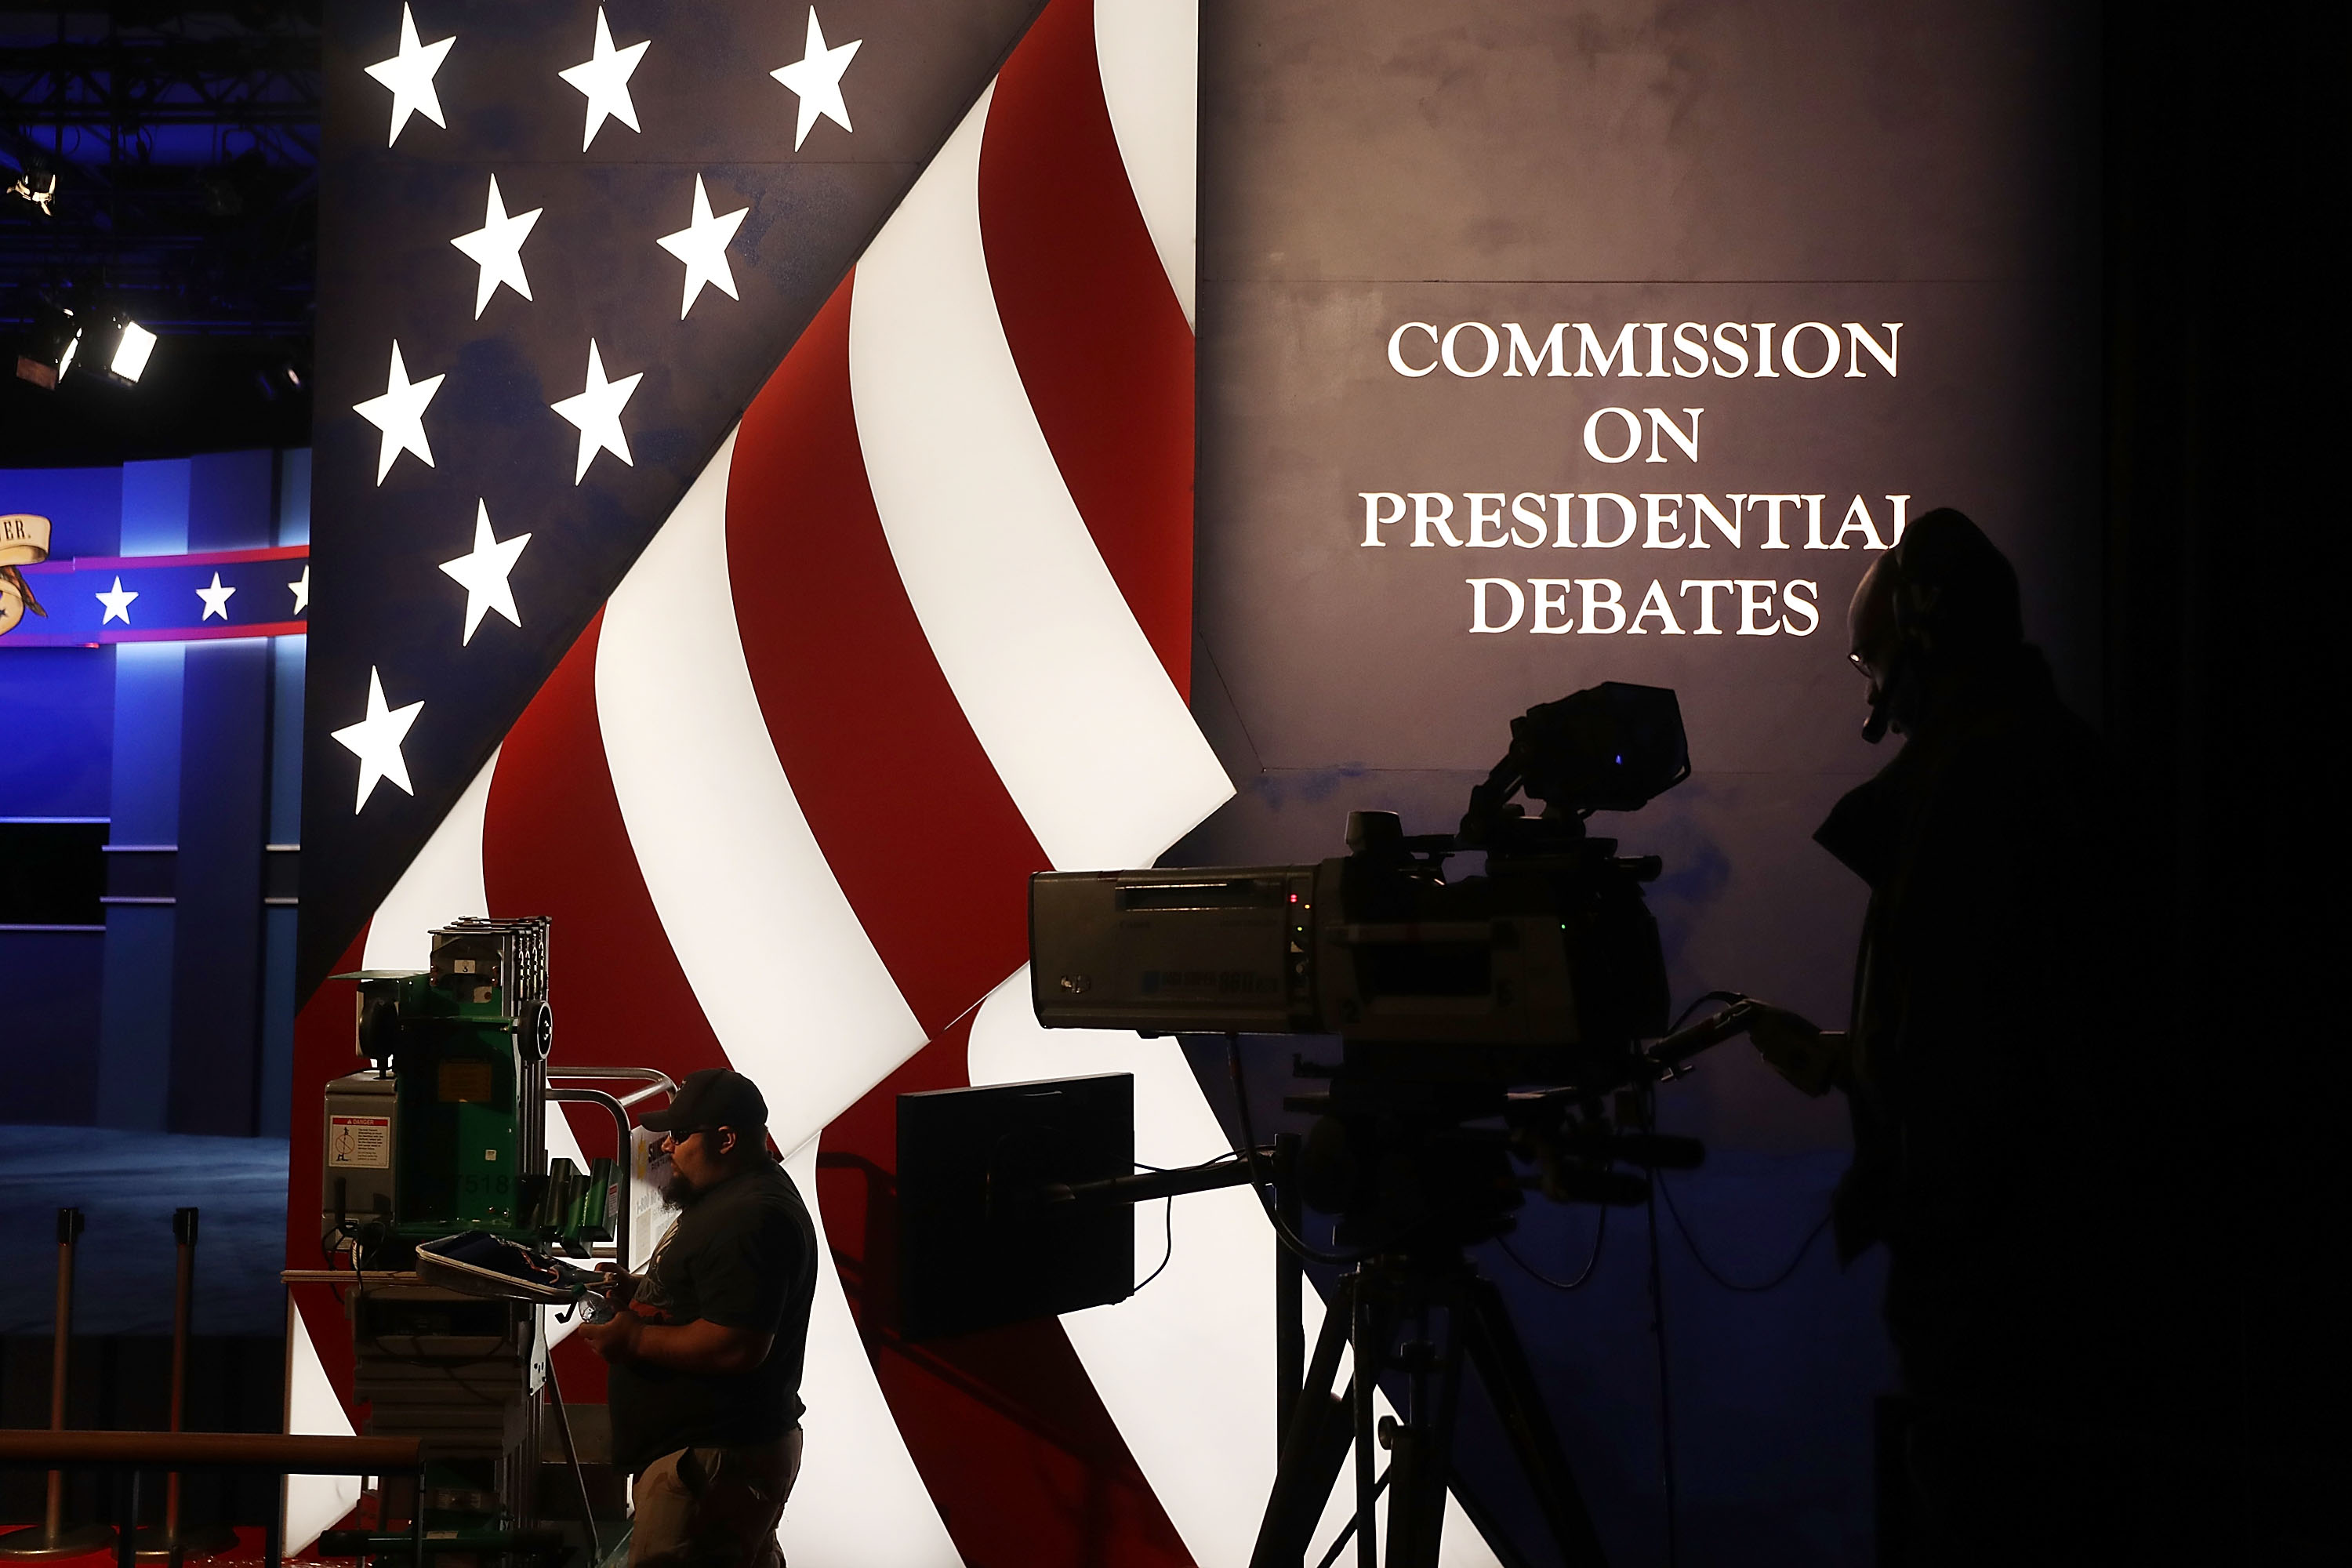 Final preparations are made on the set for the vice presidential debate scheduled to be held at Longwood University.